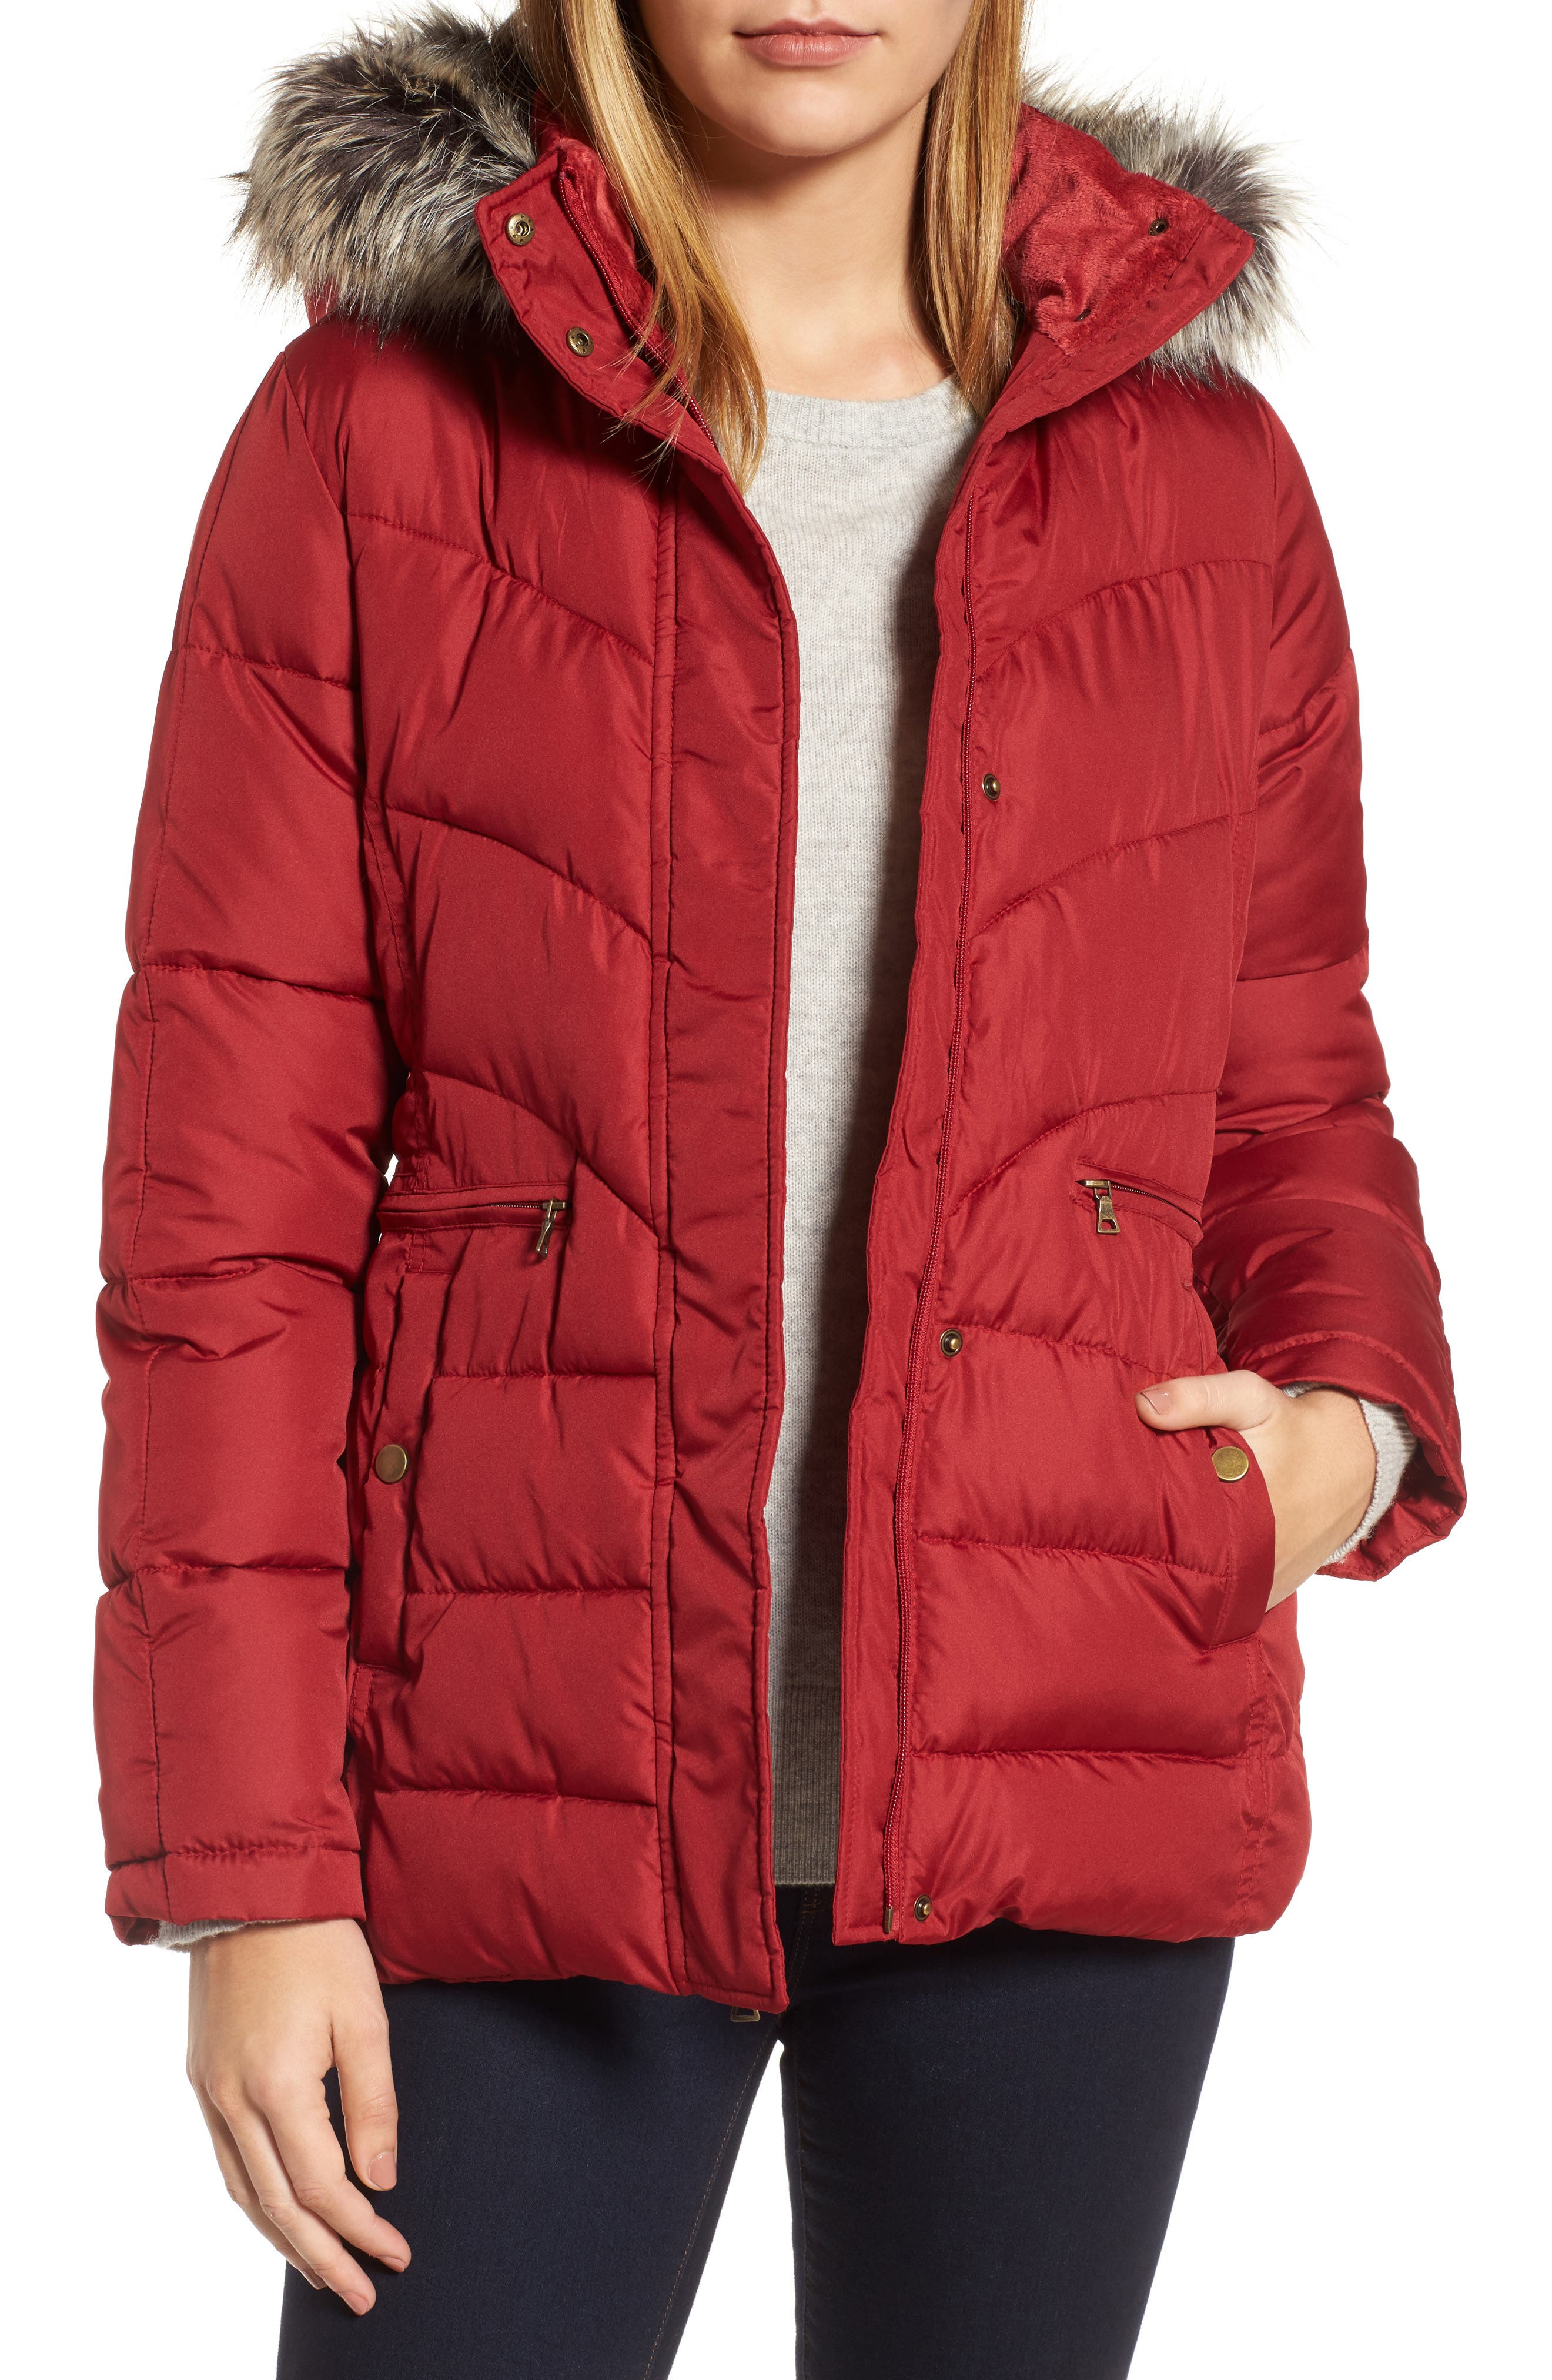 Main Image - Larry Levine Quilted Coat with Faux Fur Trim